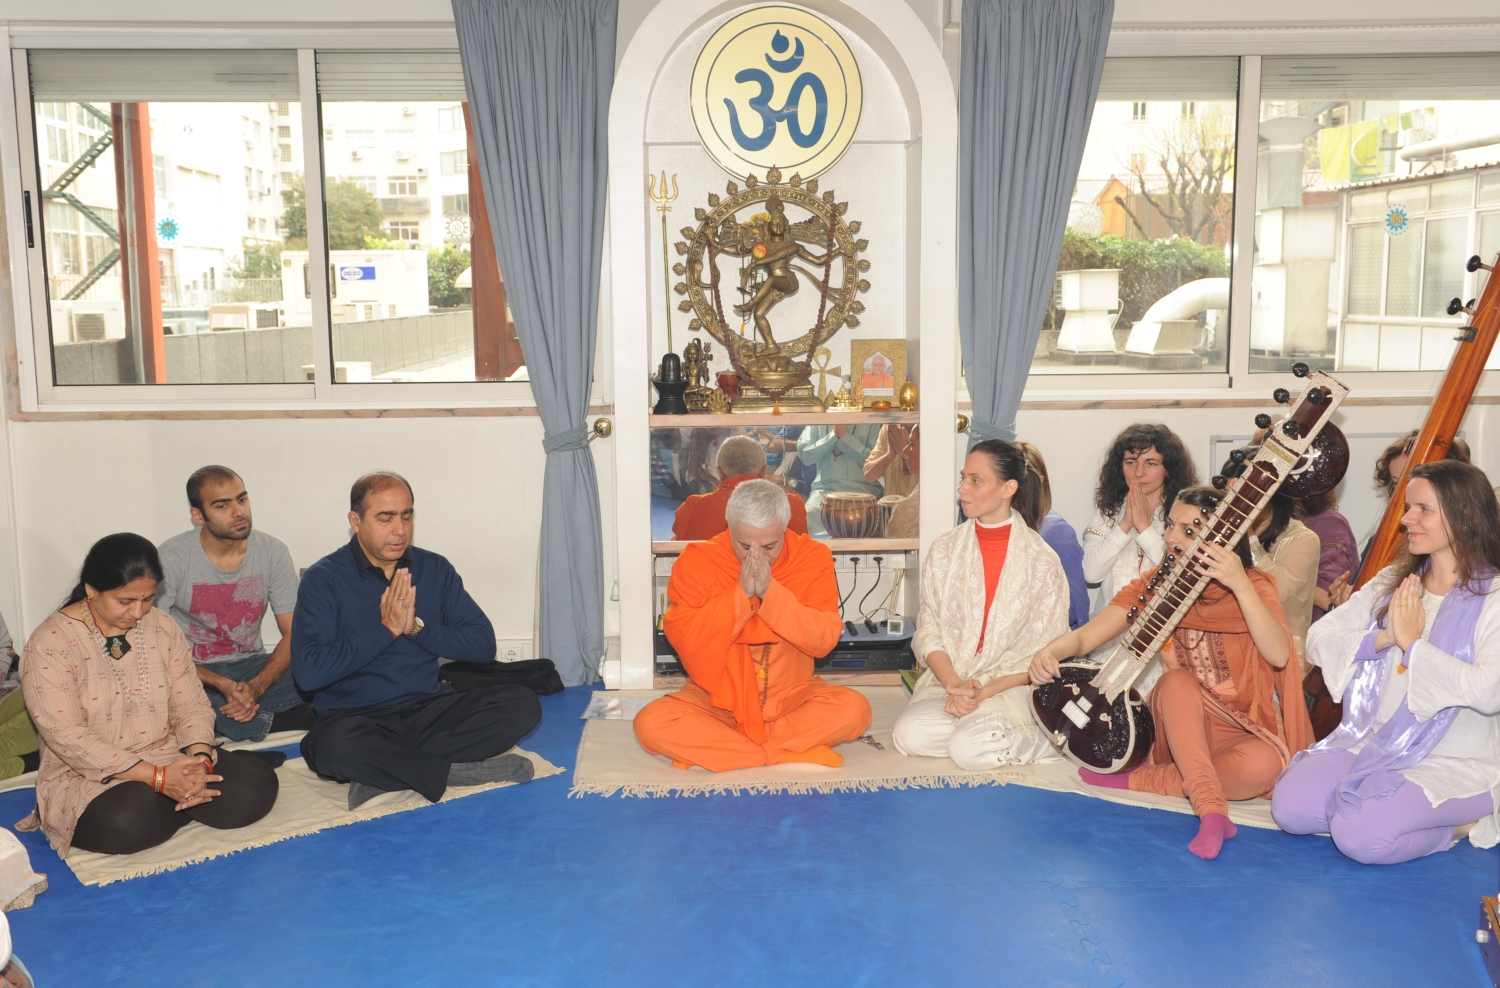 Visit of His Excellency Jitendra Natrh Misra - Ambassador of India in Portugal - at the Headquarters of the Portuguese Yoga Confederation, Lisboa – 2015